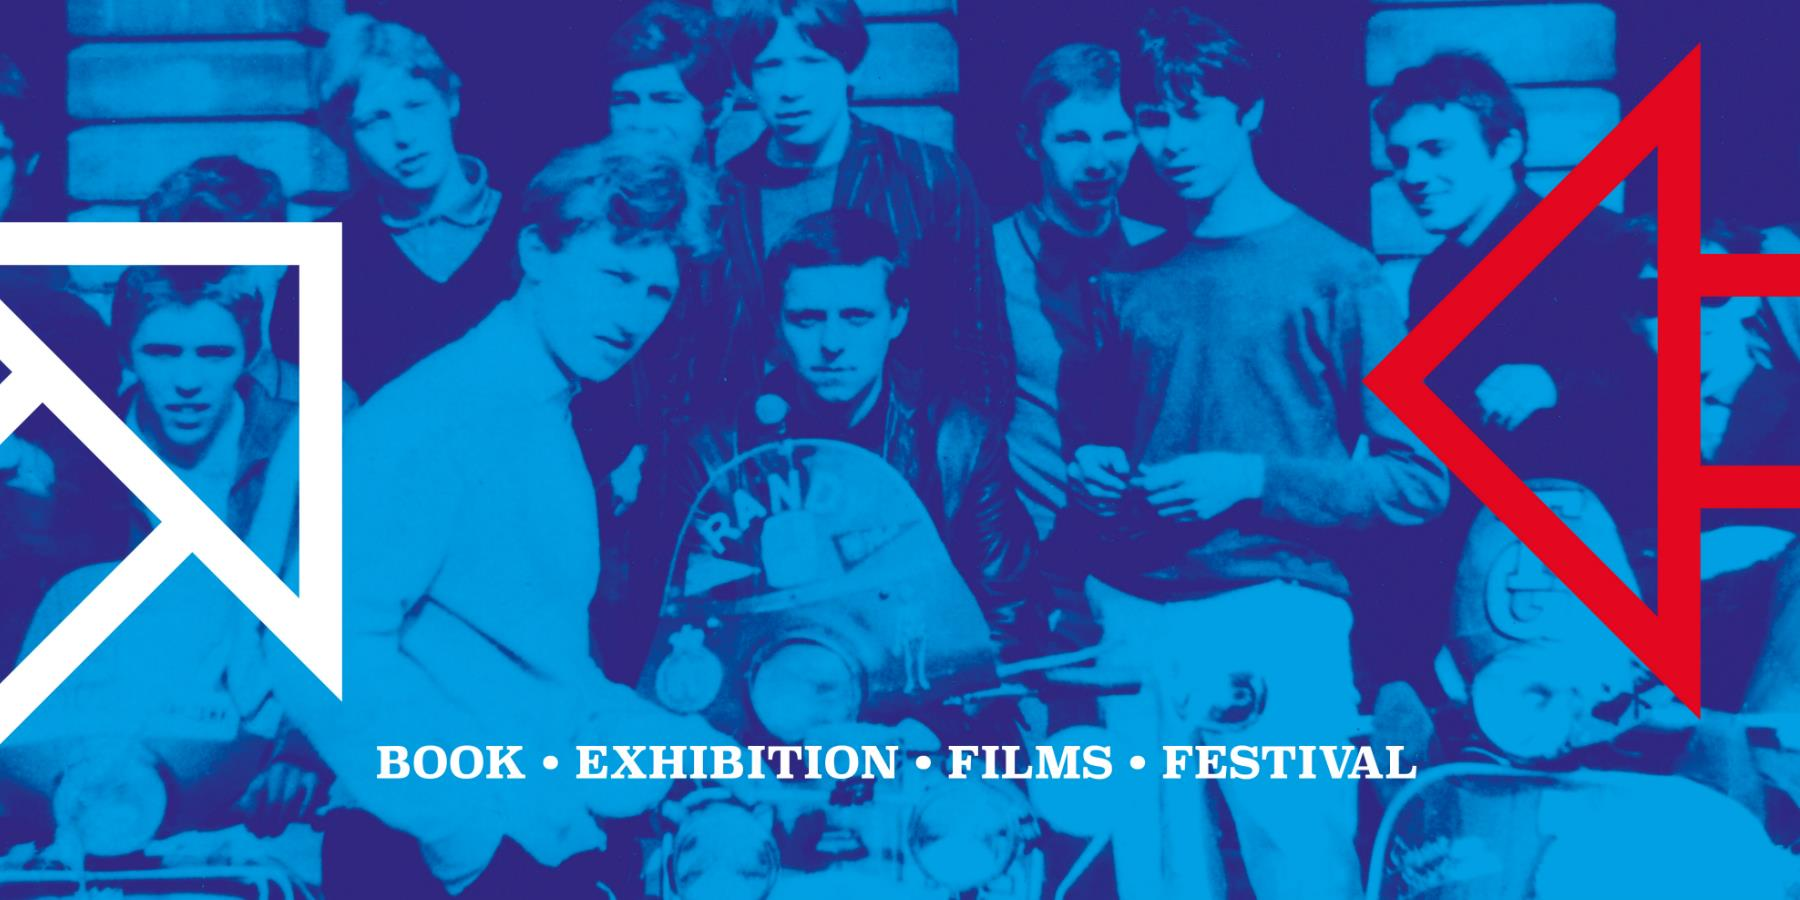 MOD EXHIBITION POSTER